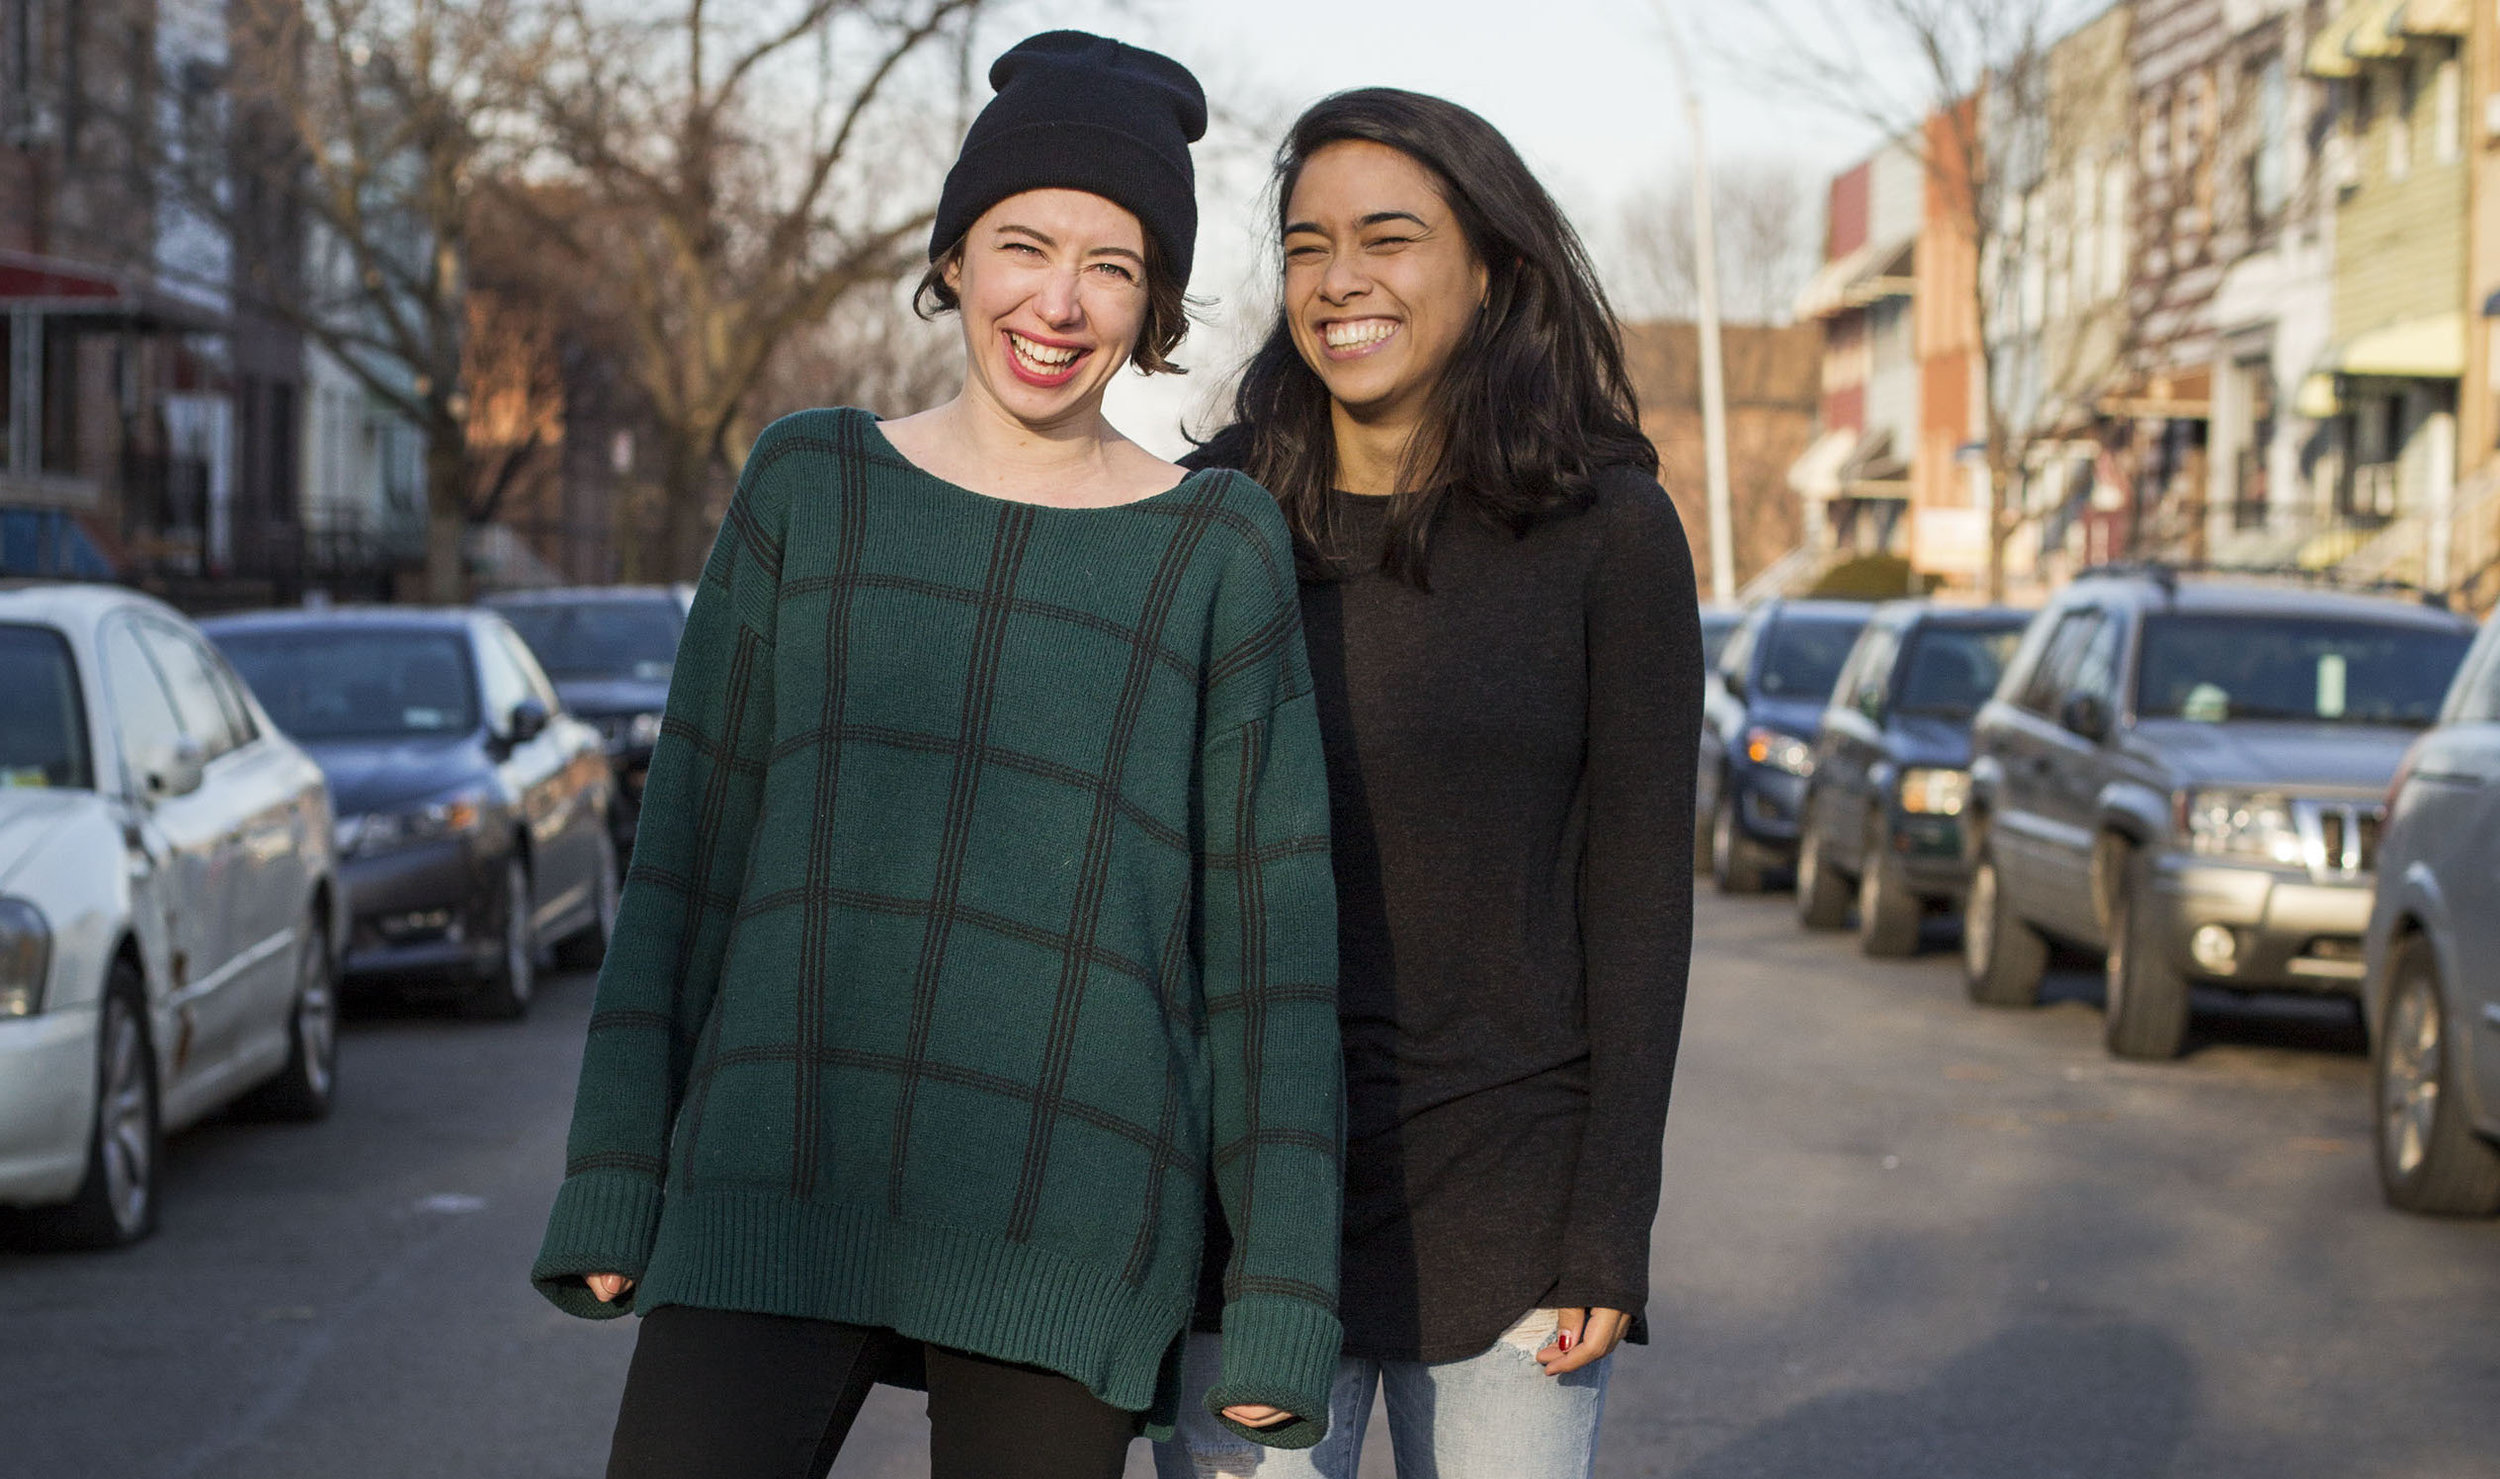 Courtney Snavely & Jane Mitchell, Co-Founders of Ovee